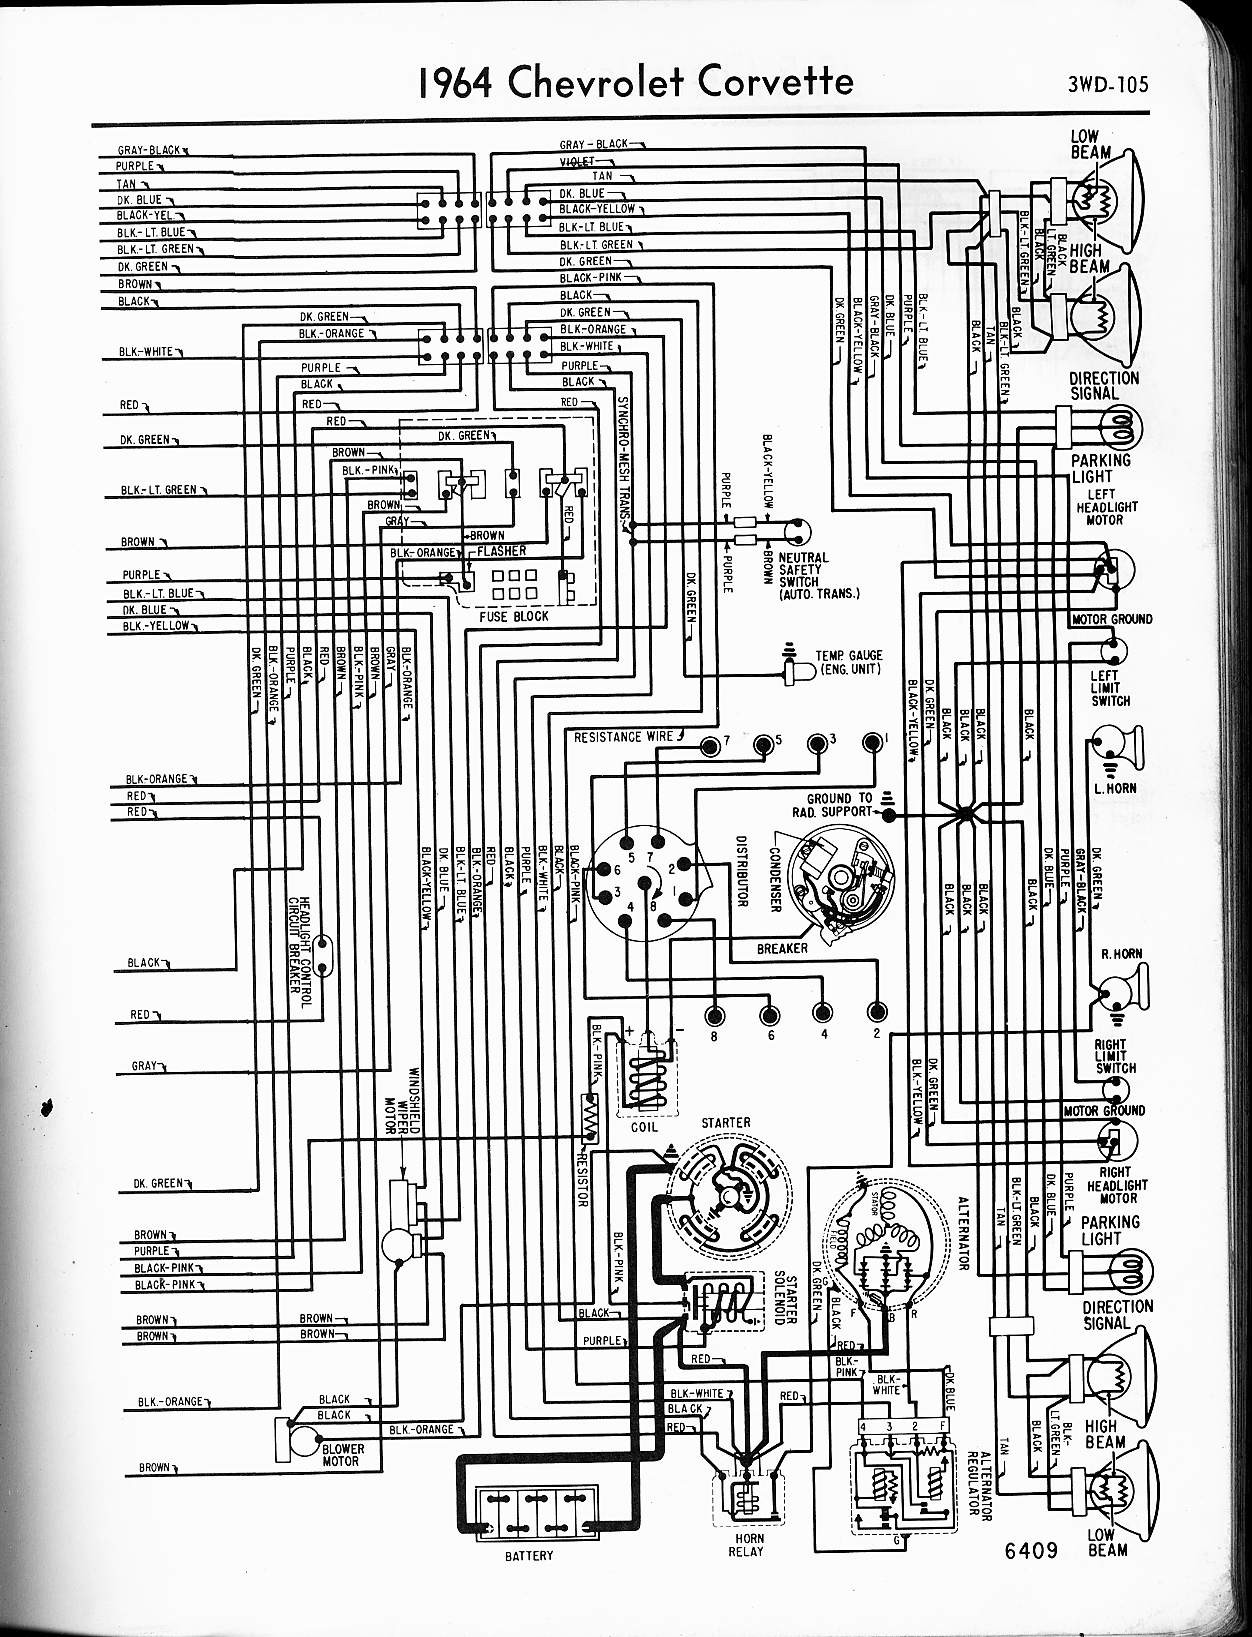 1964 Corvette Starter Wiring Diagram Free For You Gm Engine Harness 1979 1997 Library Rh 41 Codingcommunity De 1968